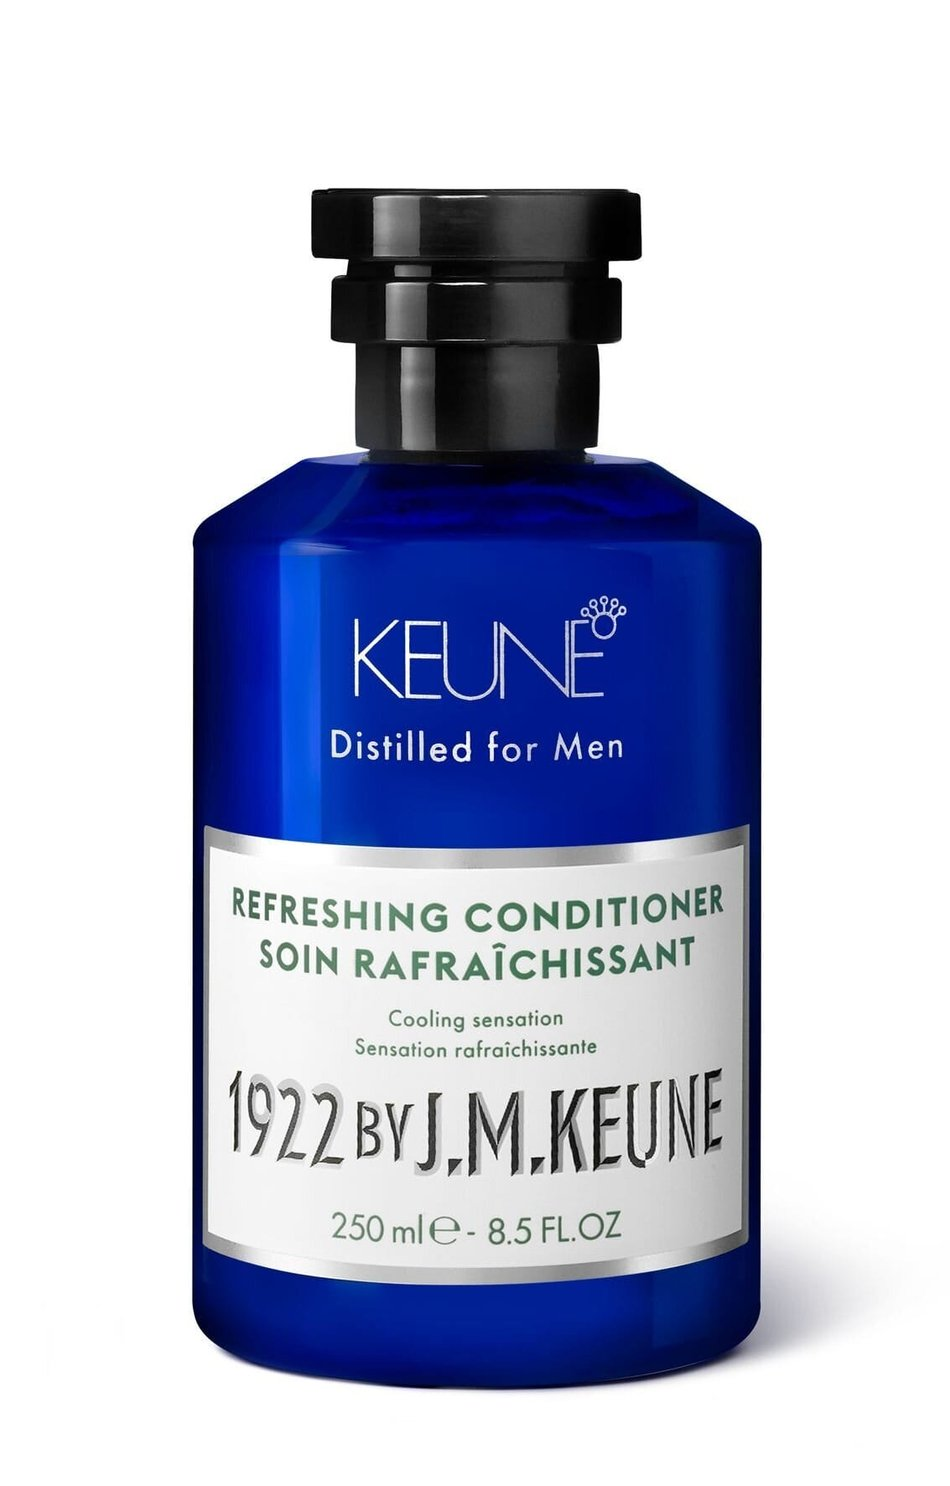 1922 BY J.M. KEUNE REFRESHING CONDITIONER